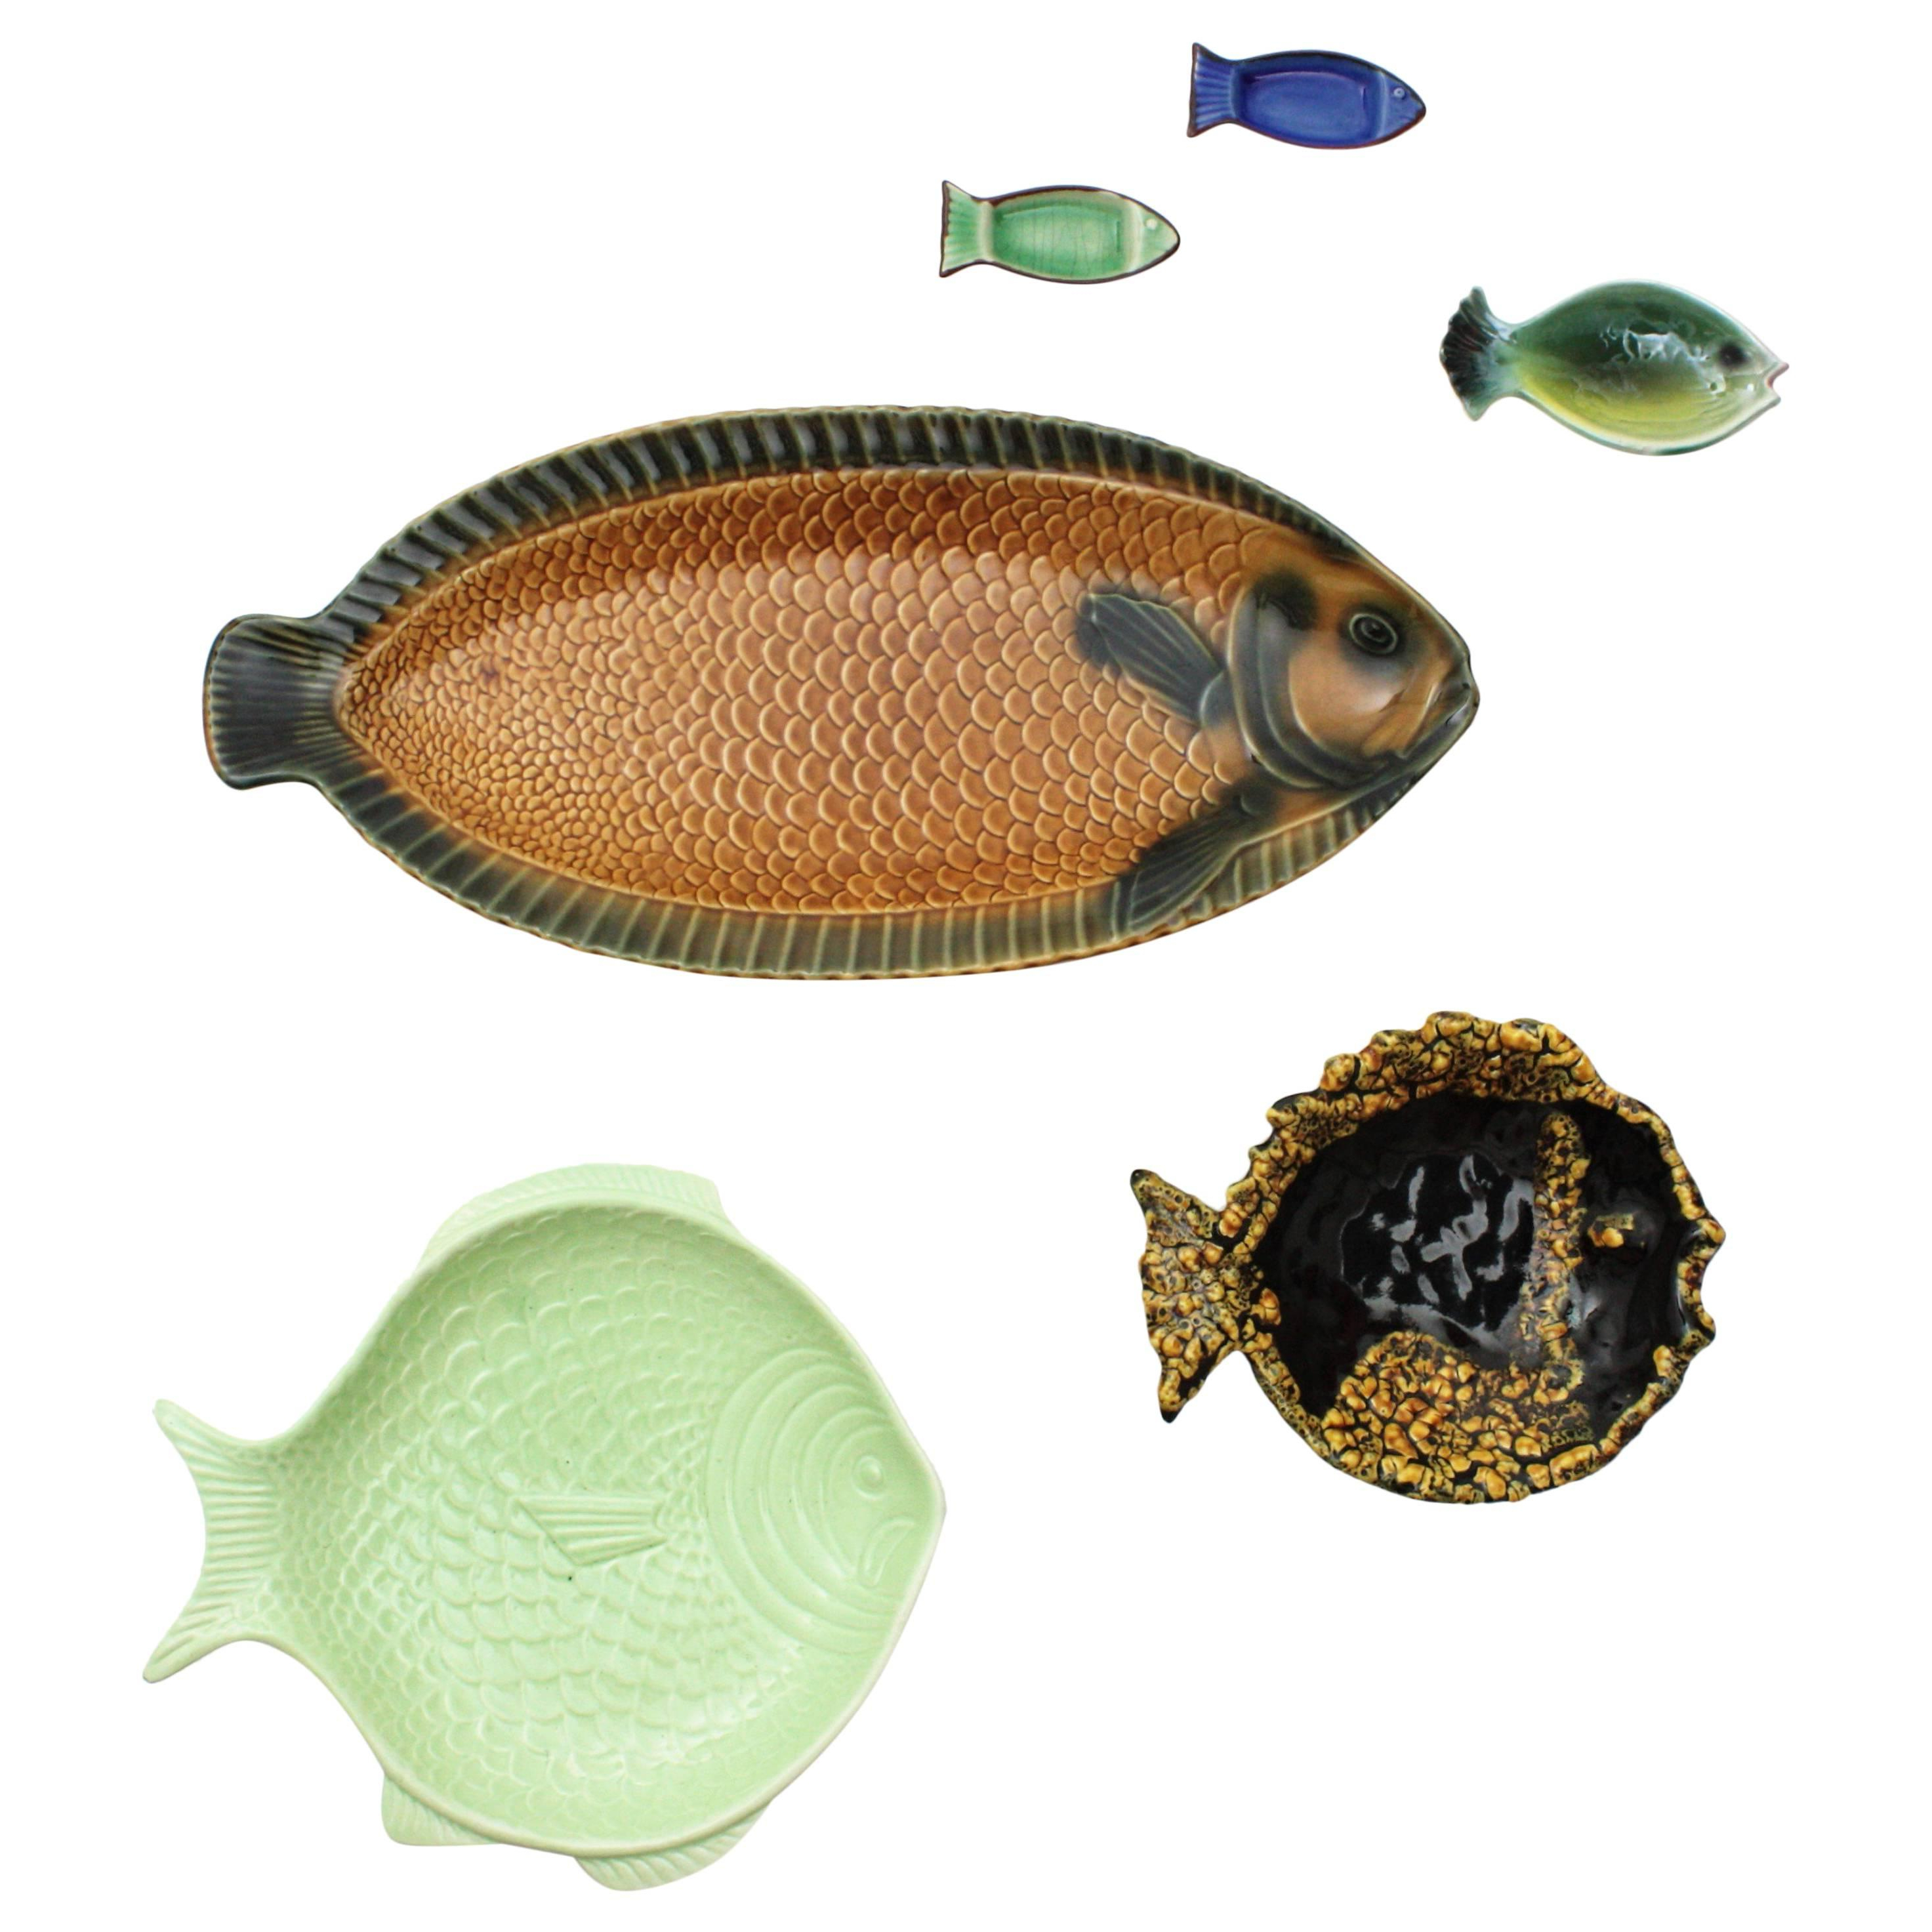 Most Recently Released 20Th Century European Majolica Ceramic 6 Fish Plates Wall Decoration Inside Ceramic Blue Fish Plate Wall Decor (Gallery 11 of 20)